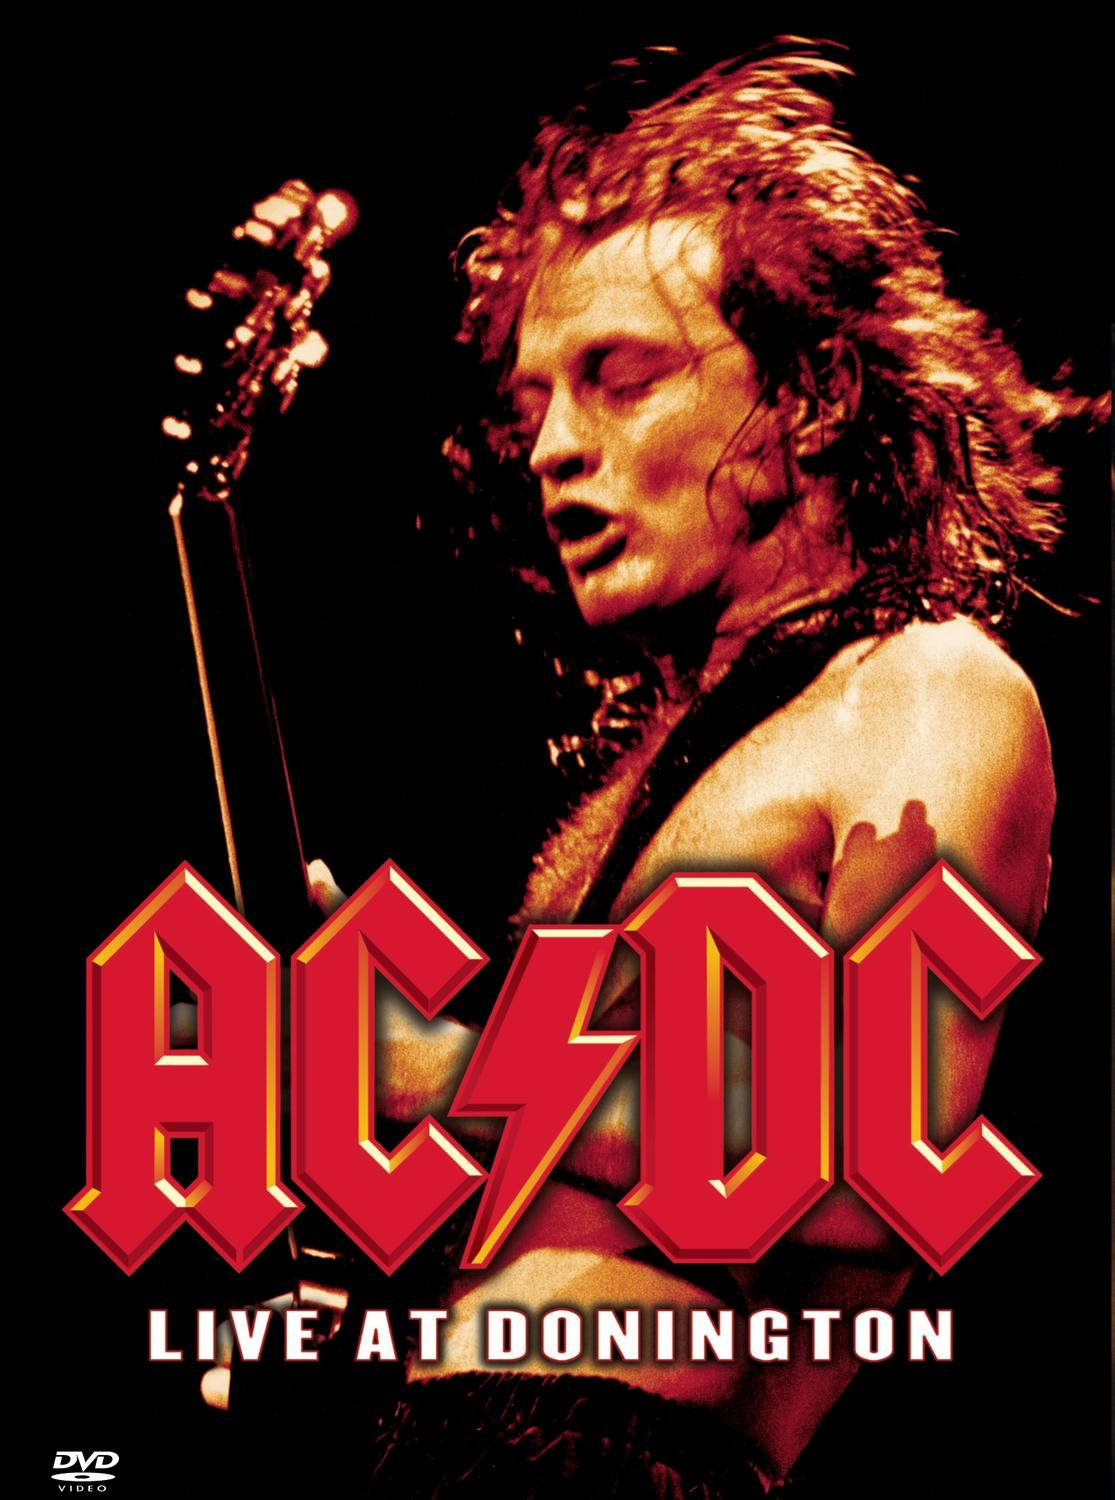 AC/DC - Live At Donington: 1991 Chris Slade Malcom Young Brian Johnson Cliff Williams